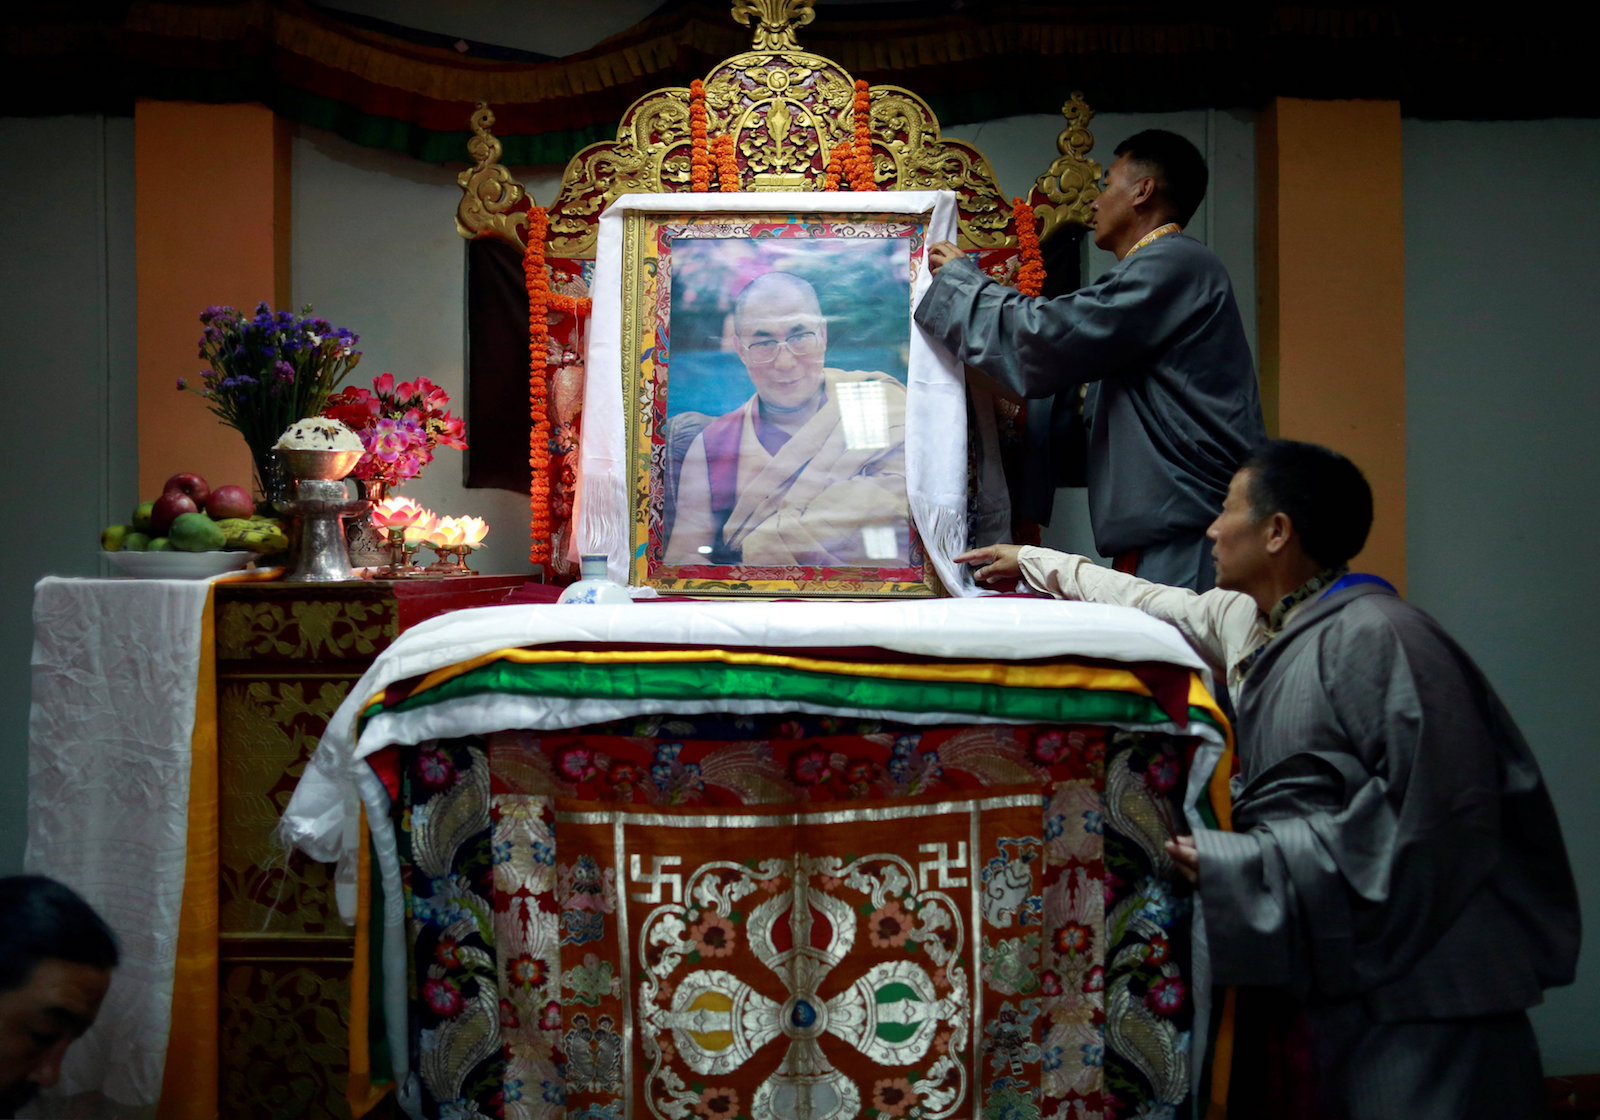 Tibetans arrange the portrait of Dalai Lama during a function organised to mark the 82nd birthday celebration of Dalai Lama in Lalitpur, Nepal July 6, 2017. REUTERS/Navesh Chitrakar